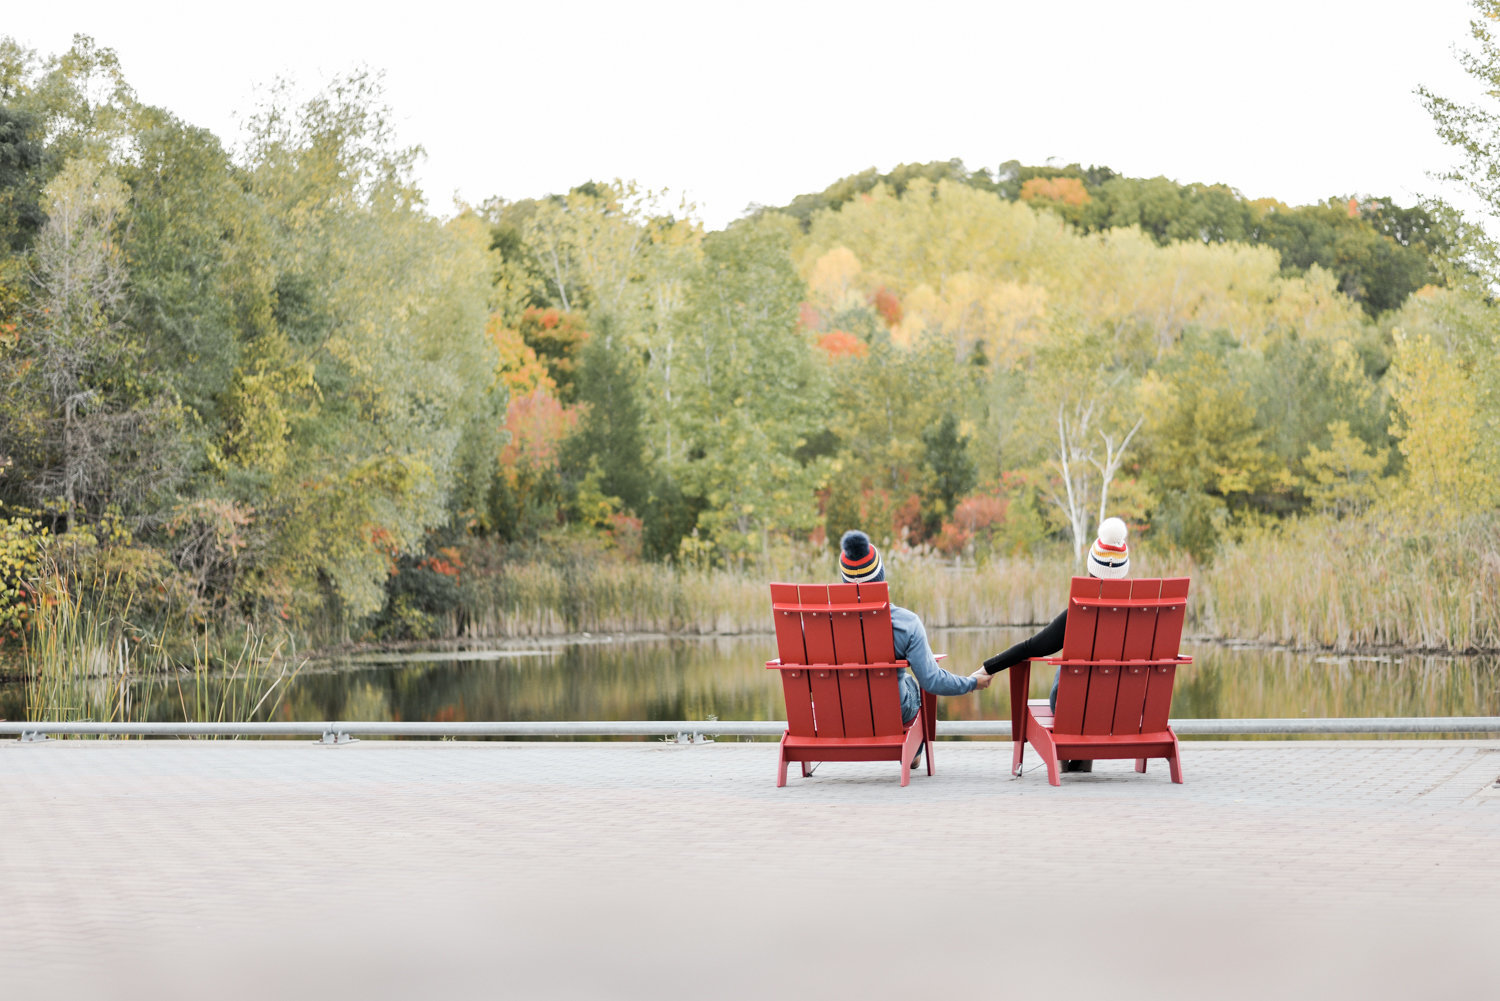 Brickworks engagement photos